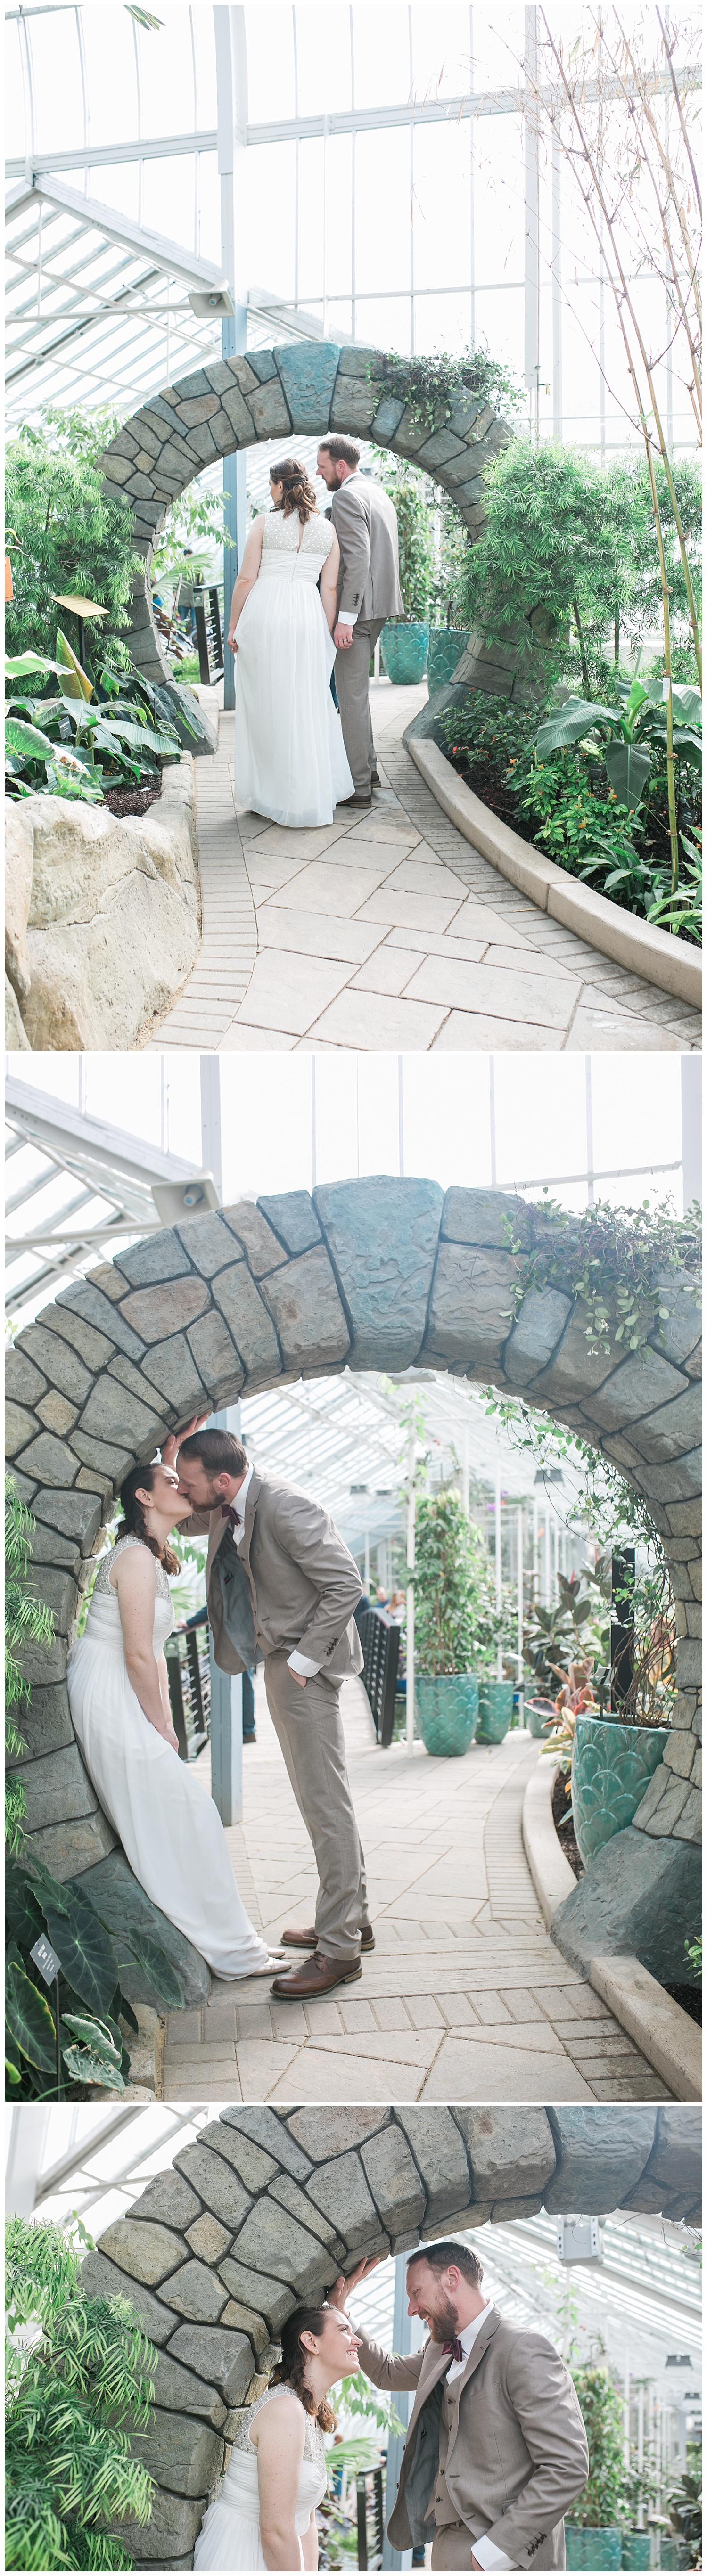 Buffalo Botanical gardens wedding - Buffalo NY Lass and Beau 56.jpg